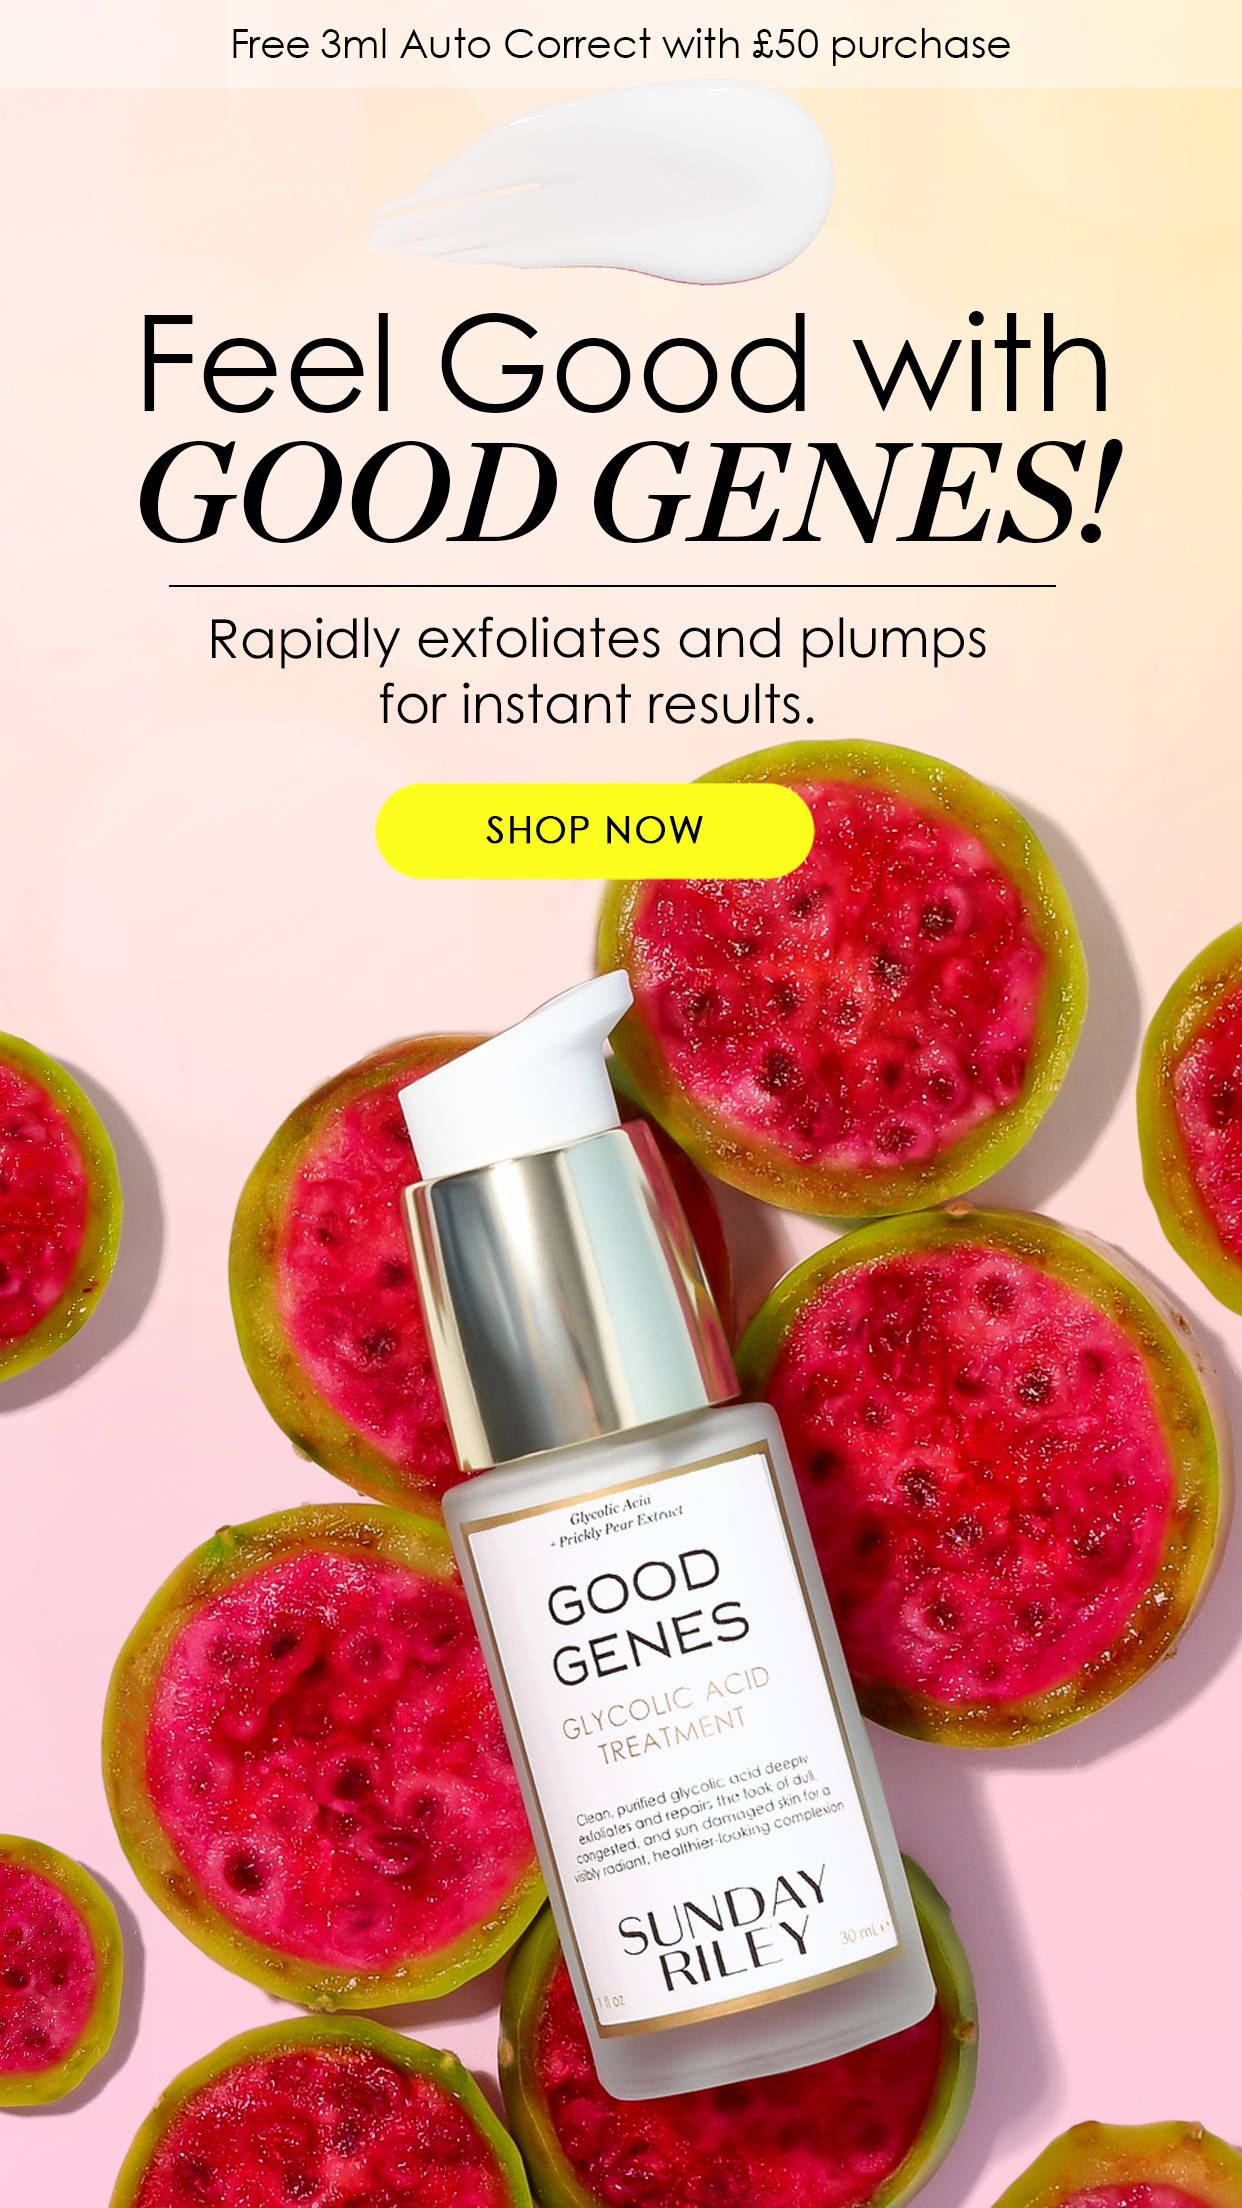 FEEL GOOD WITH GOOD GENES BANNER WITH GOOD GENES LACTIC BOTTLE